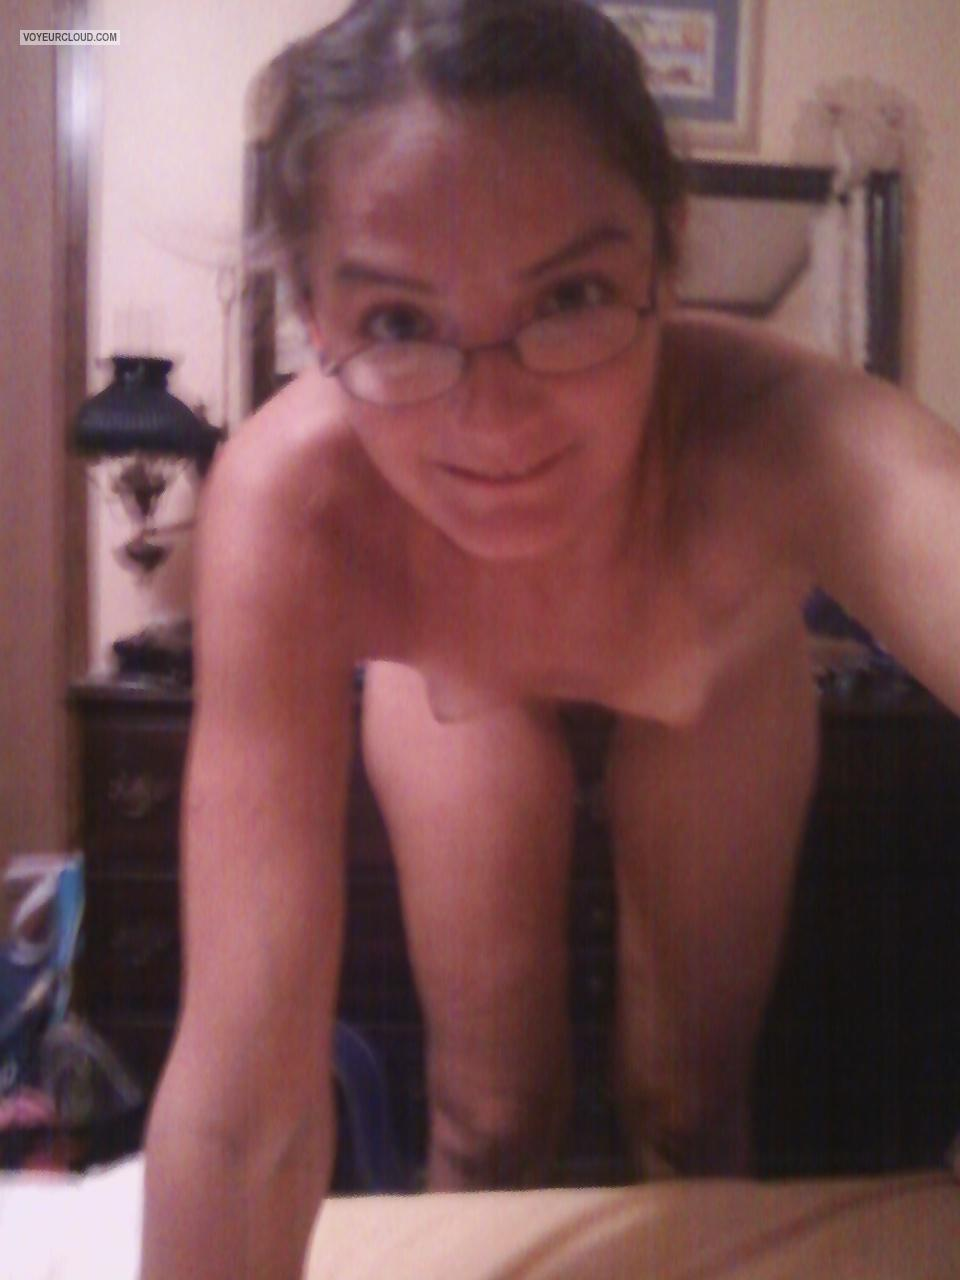 Tit Flash: My Very Small Tits By IPhone (Selfie) - Topless Cellar Dweller from United States